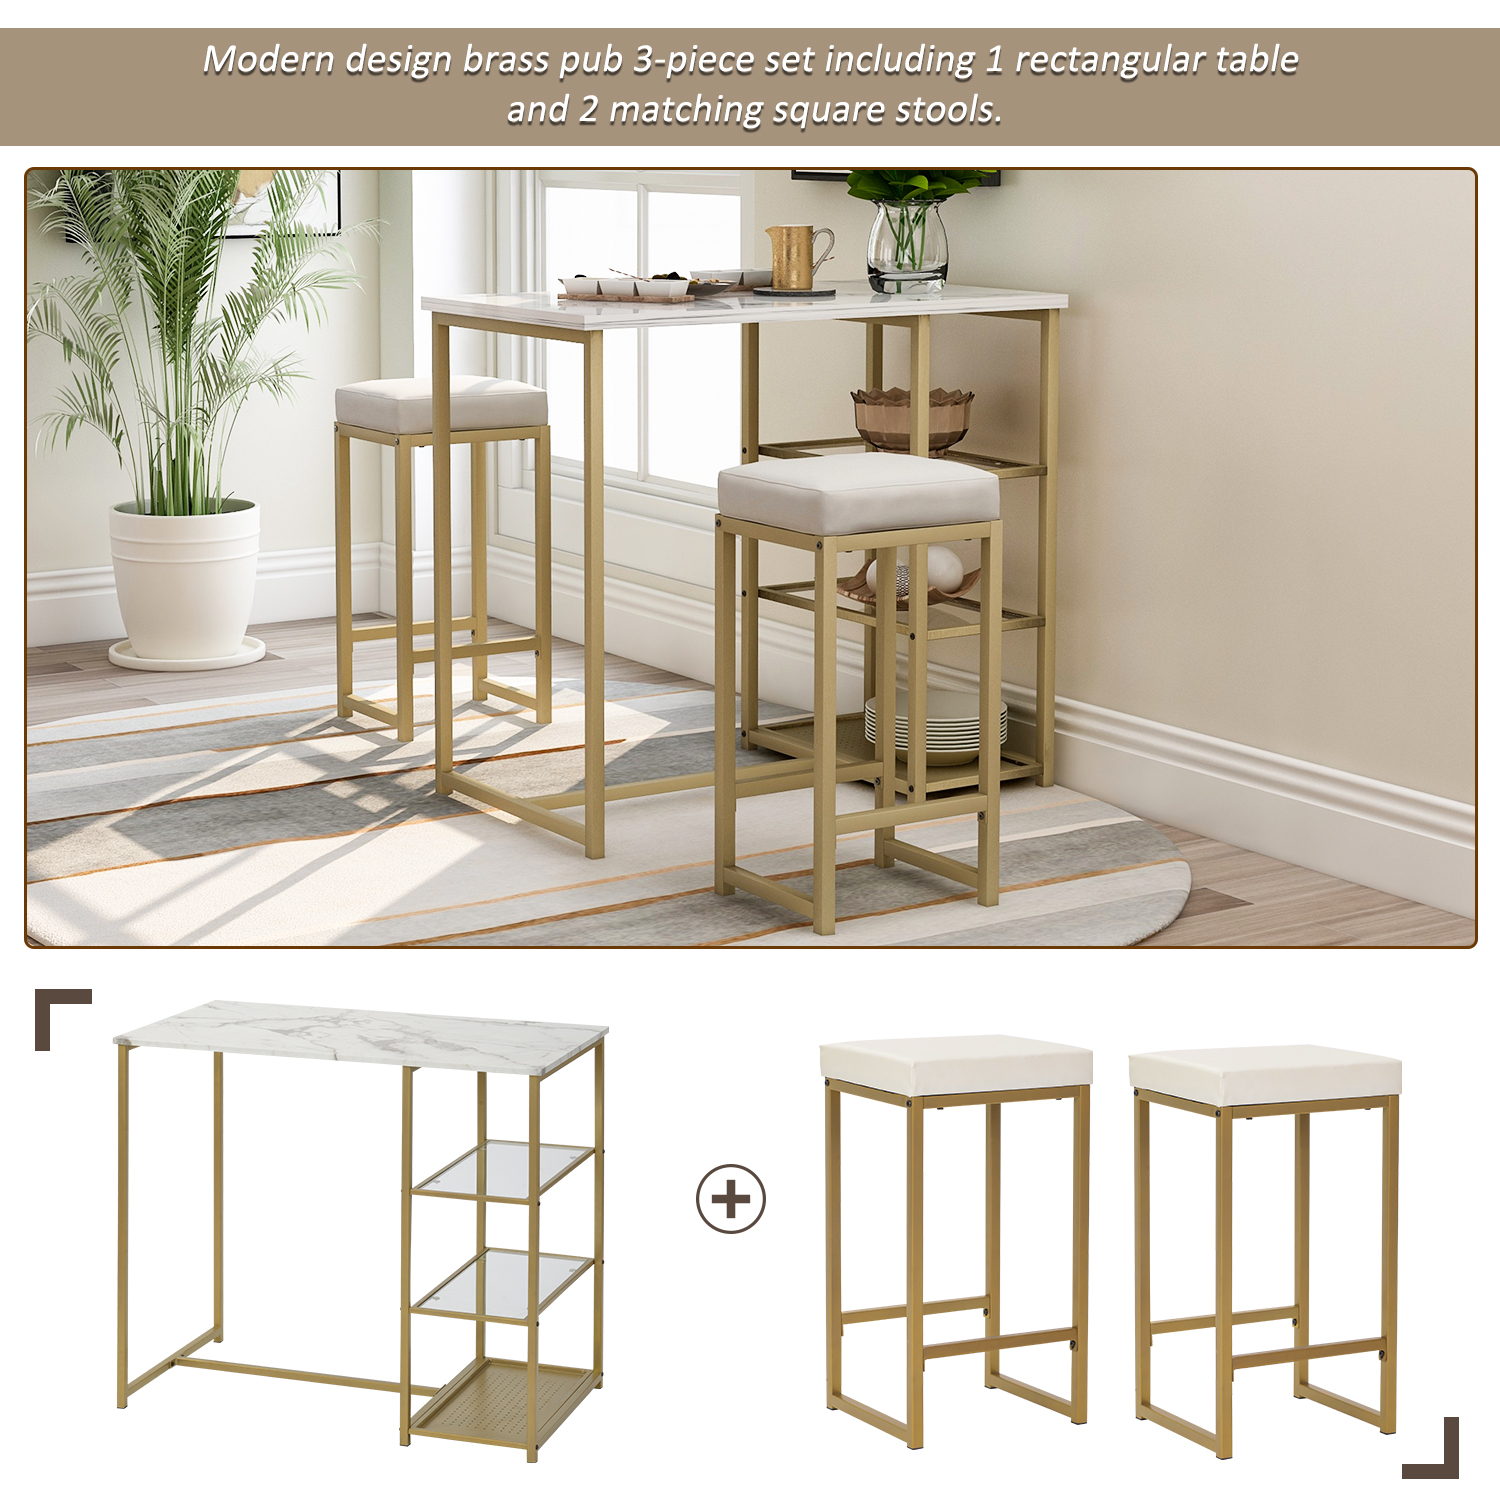 3-Piece Modern Pub Set With Faux Marble Countertop And Bar Stools